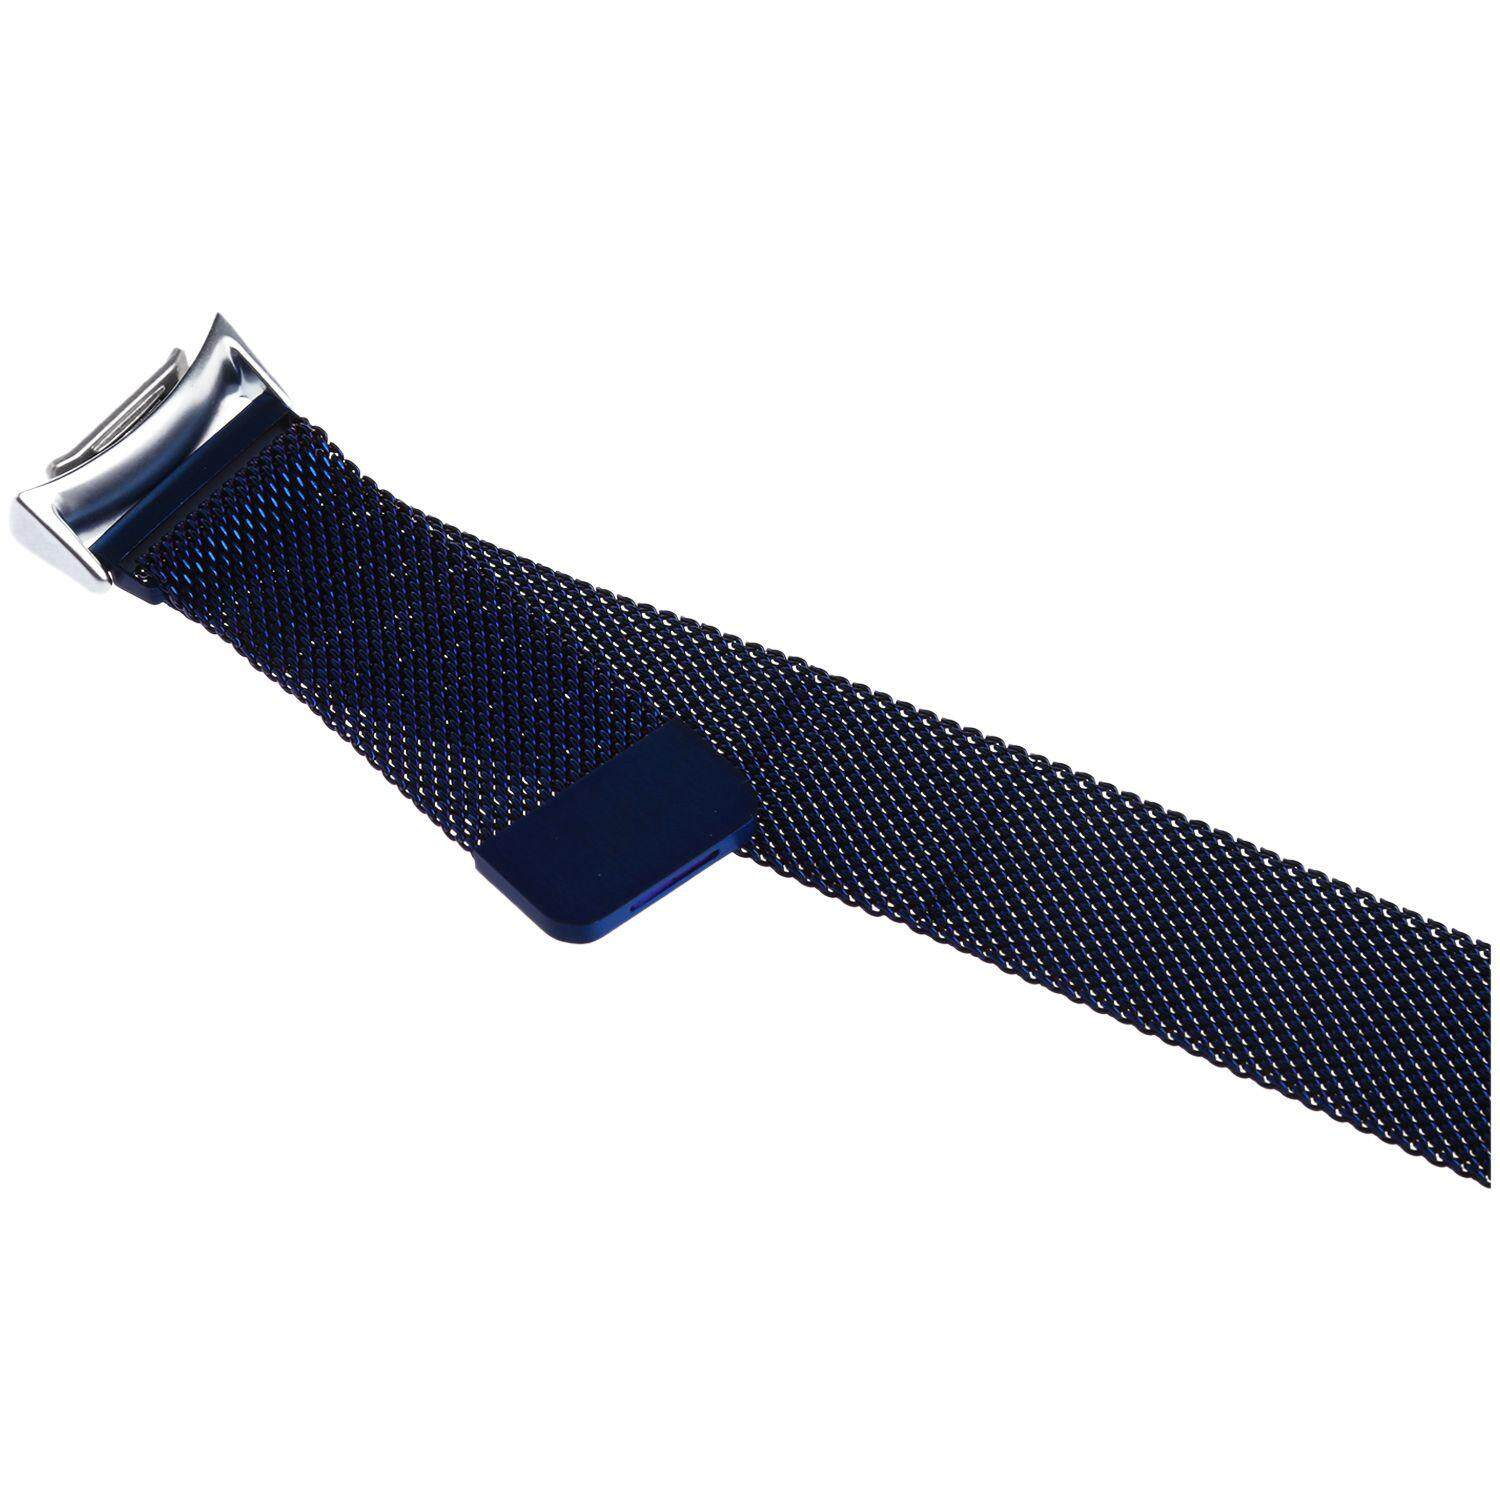 Magnetic Stainless Steel Watch Band Strap + Connector For Samsung Gear S2 RM-720  Blue Malaysia